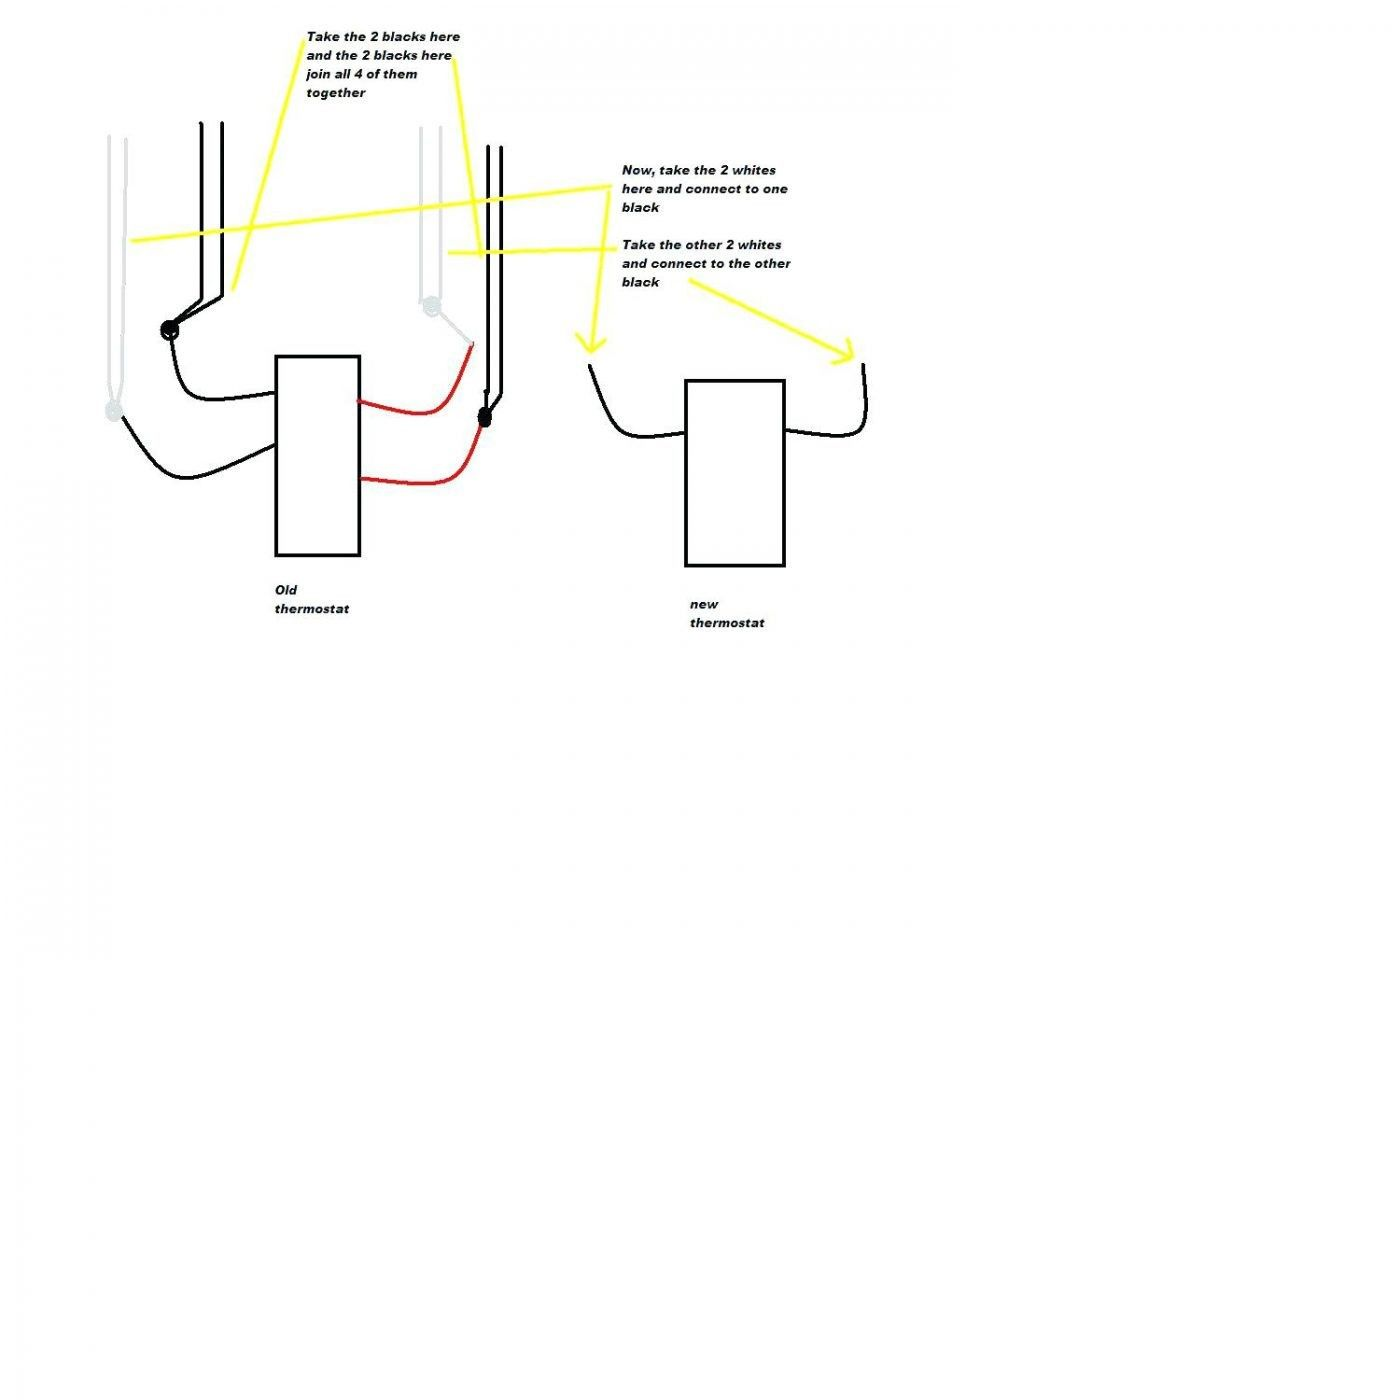 Fahrenheat Electric Baseboard Heater Wiring Diagram from i.pinimg.com